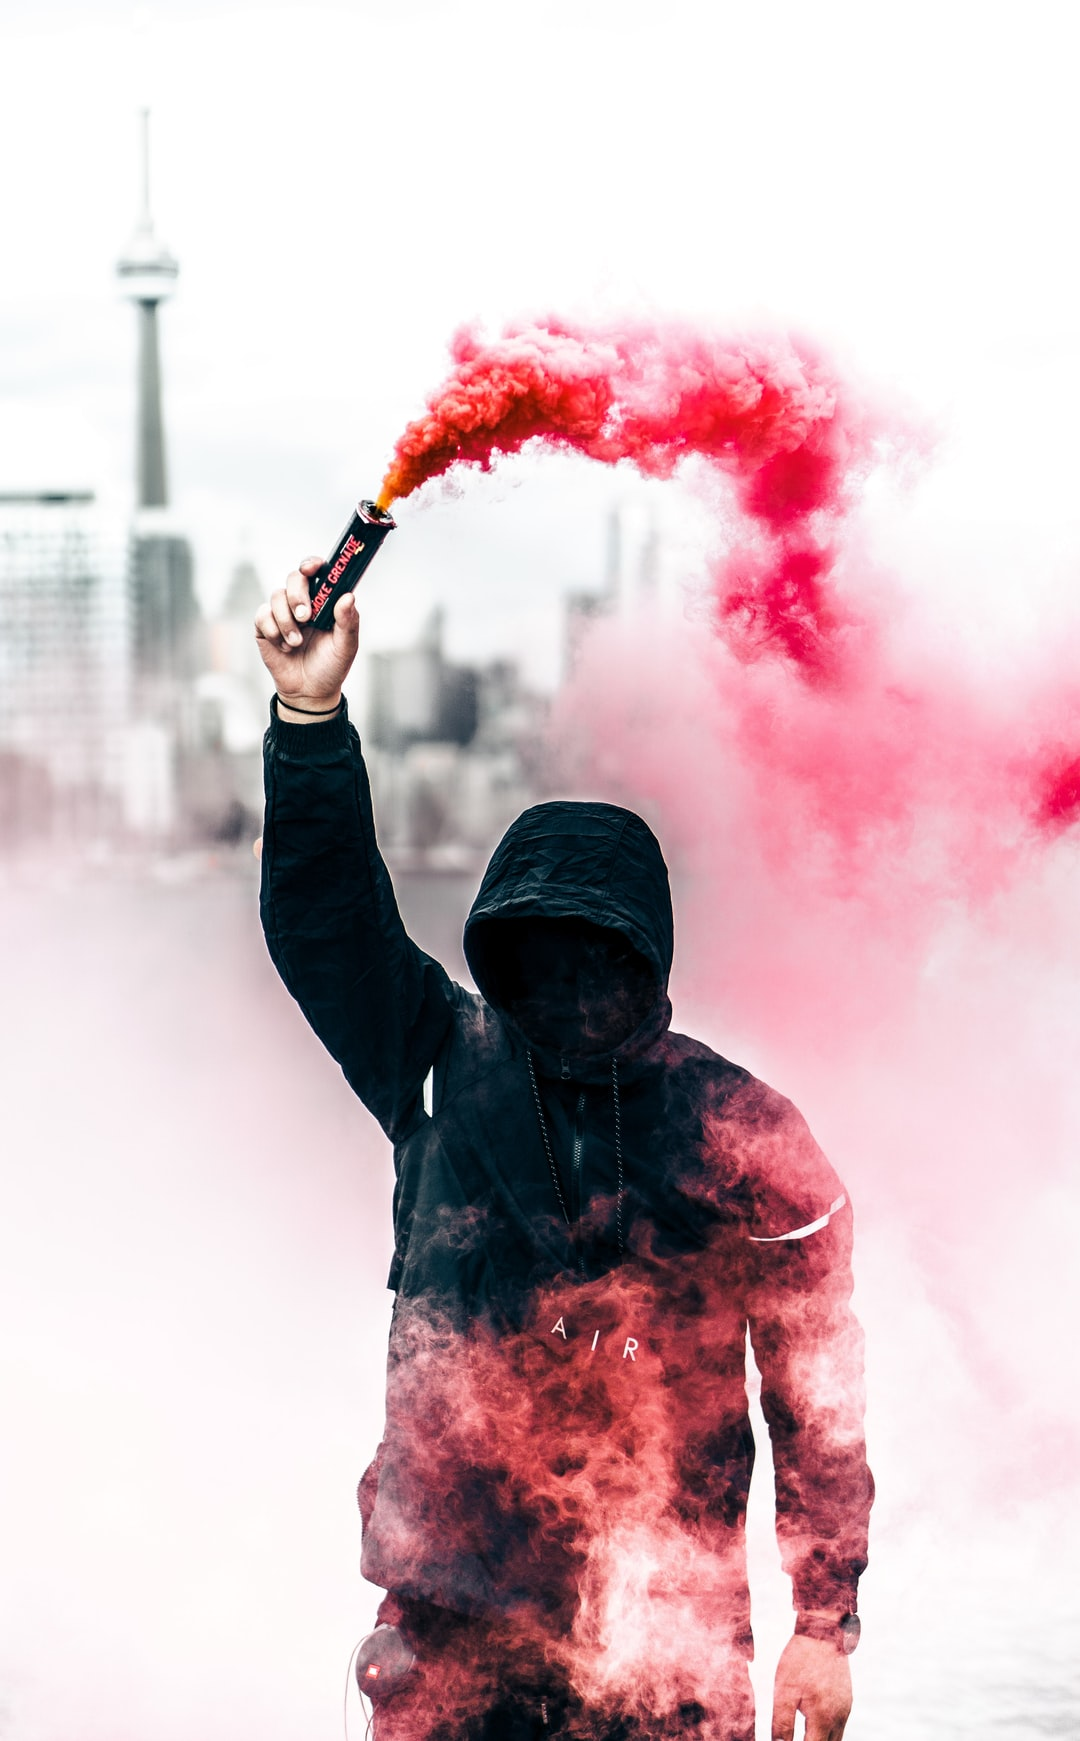 Go To Homepage >> Person with pink smoke grenade | HD photo by Warren Wong (@wflwong) on Unsplash